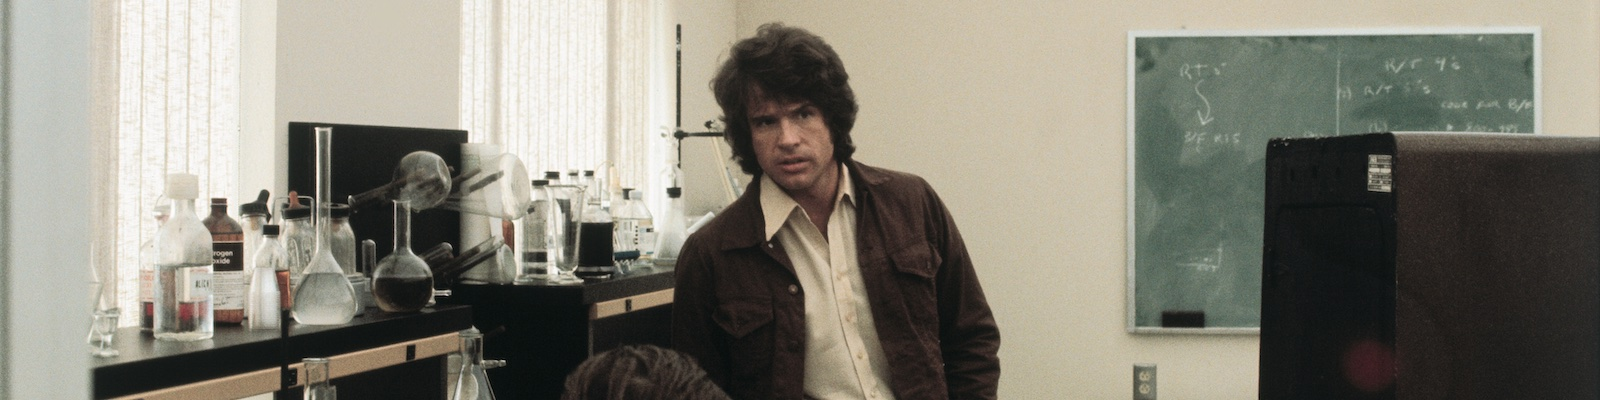 Warren Beatty in a chemistry lab in The Parallax View